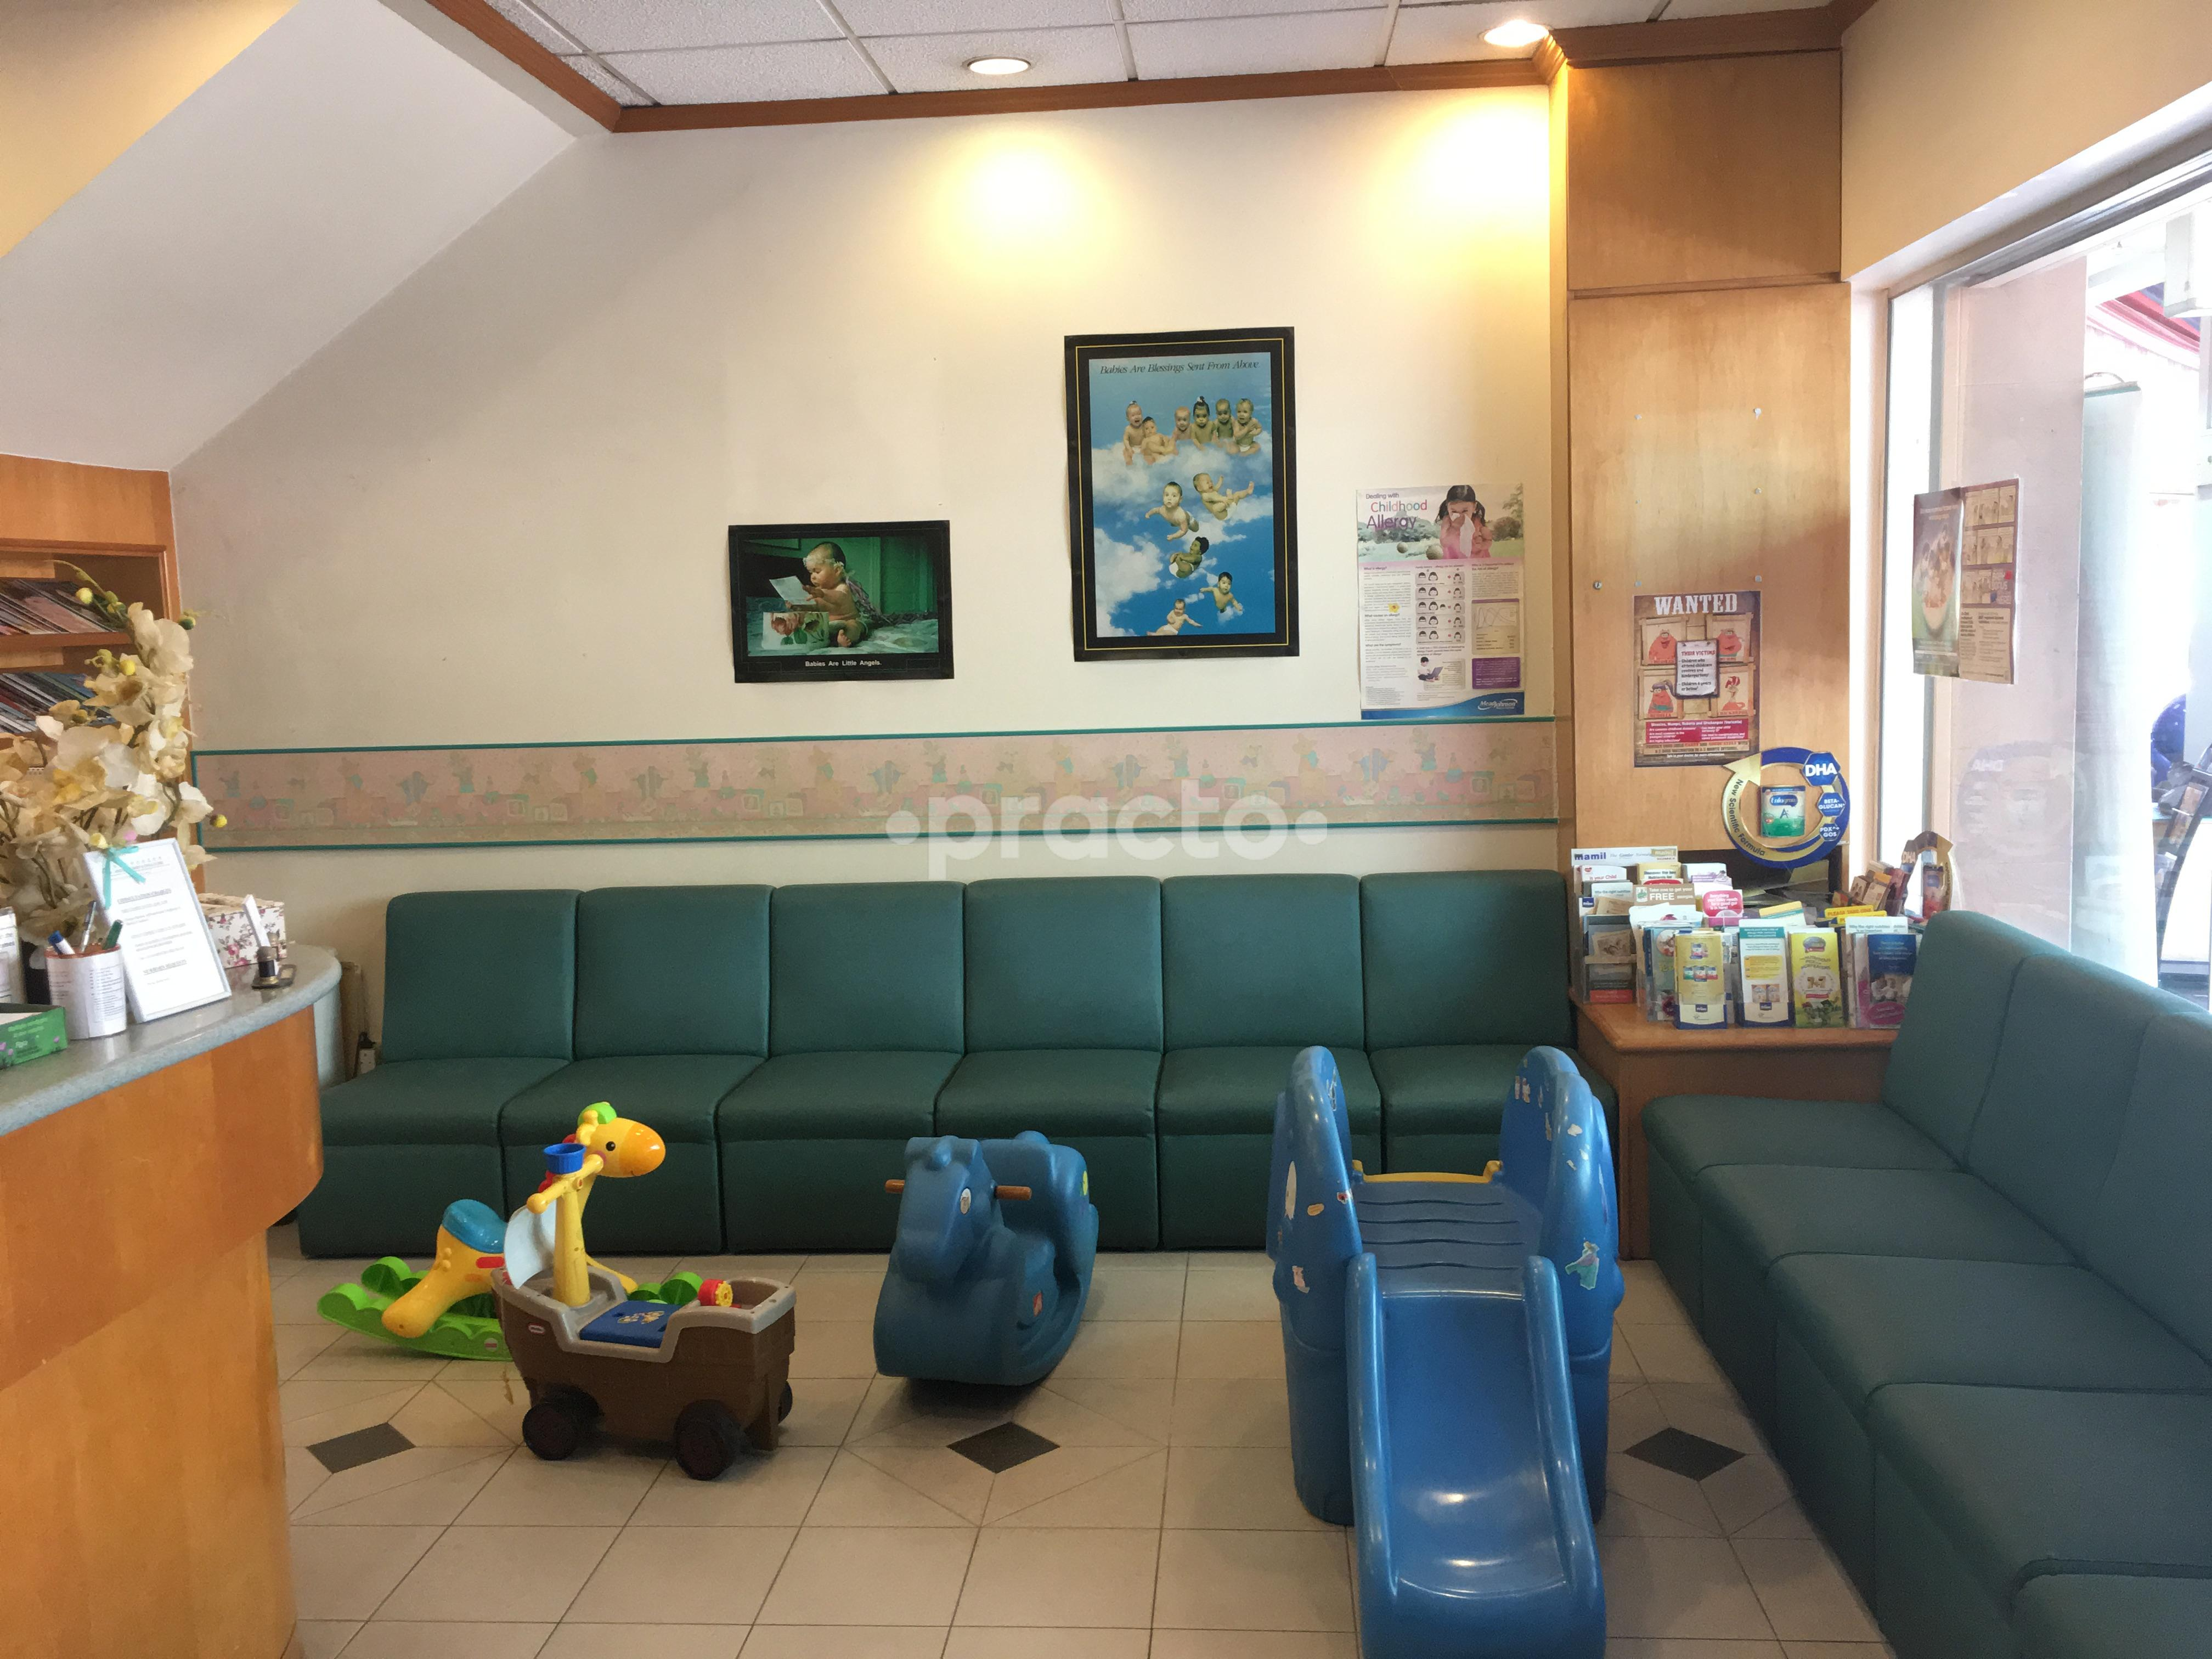 Best Pediatric Clinics in Singapore - Book Appointment, View